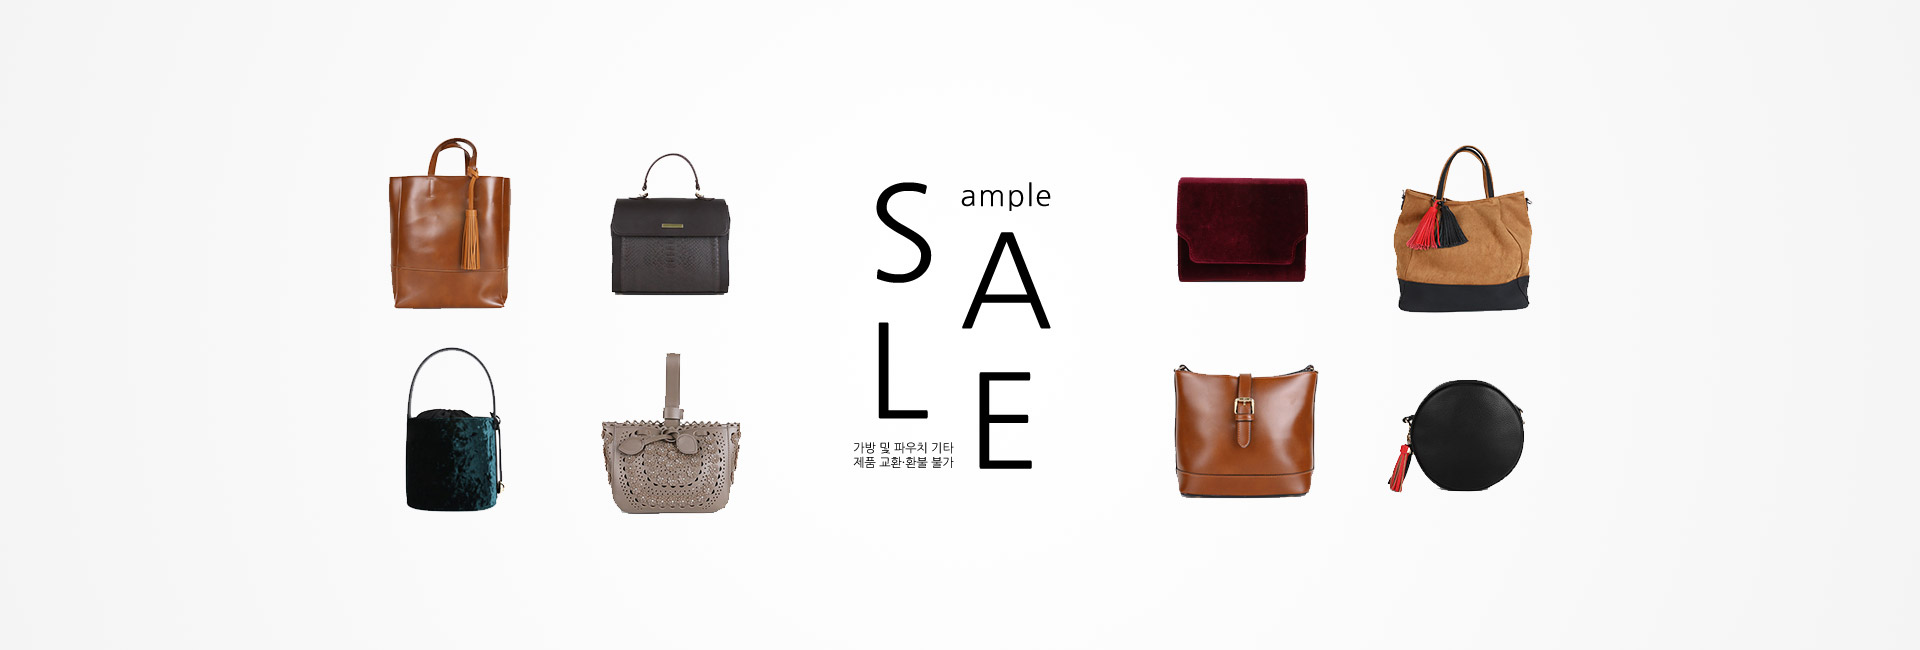 SAMEPLE SALE